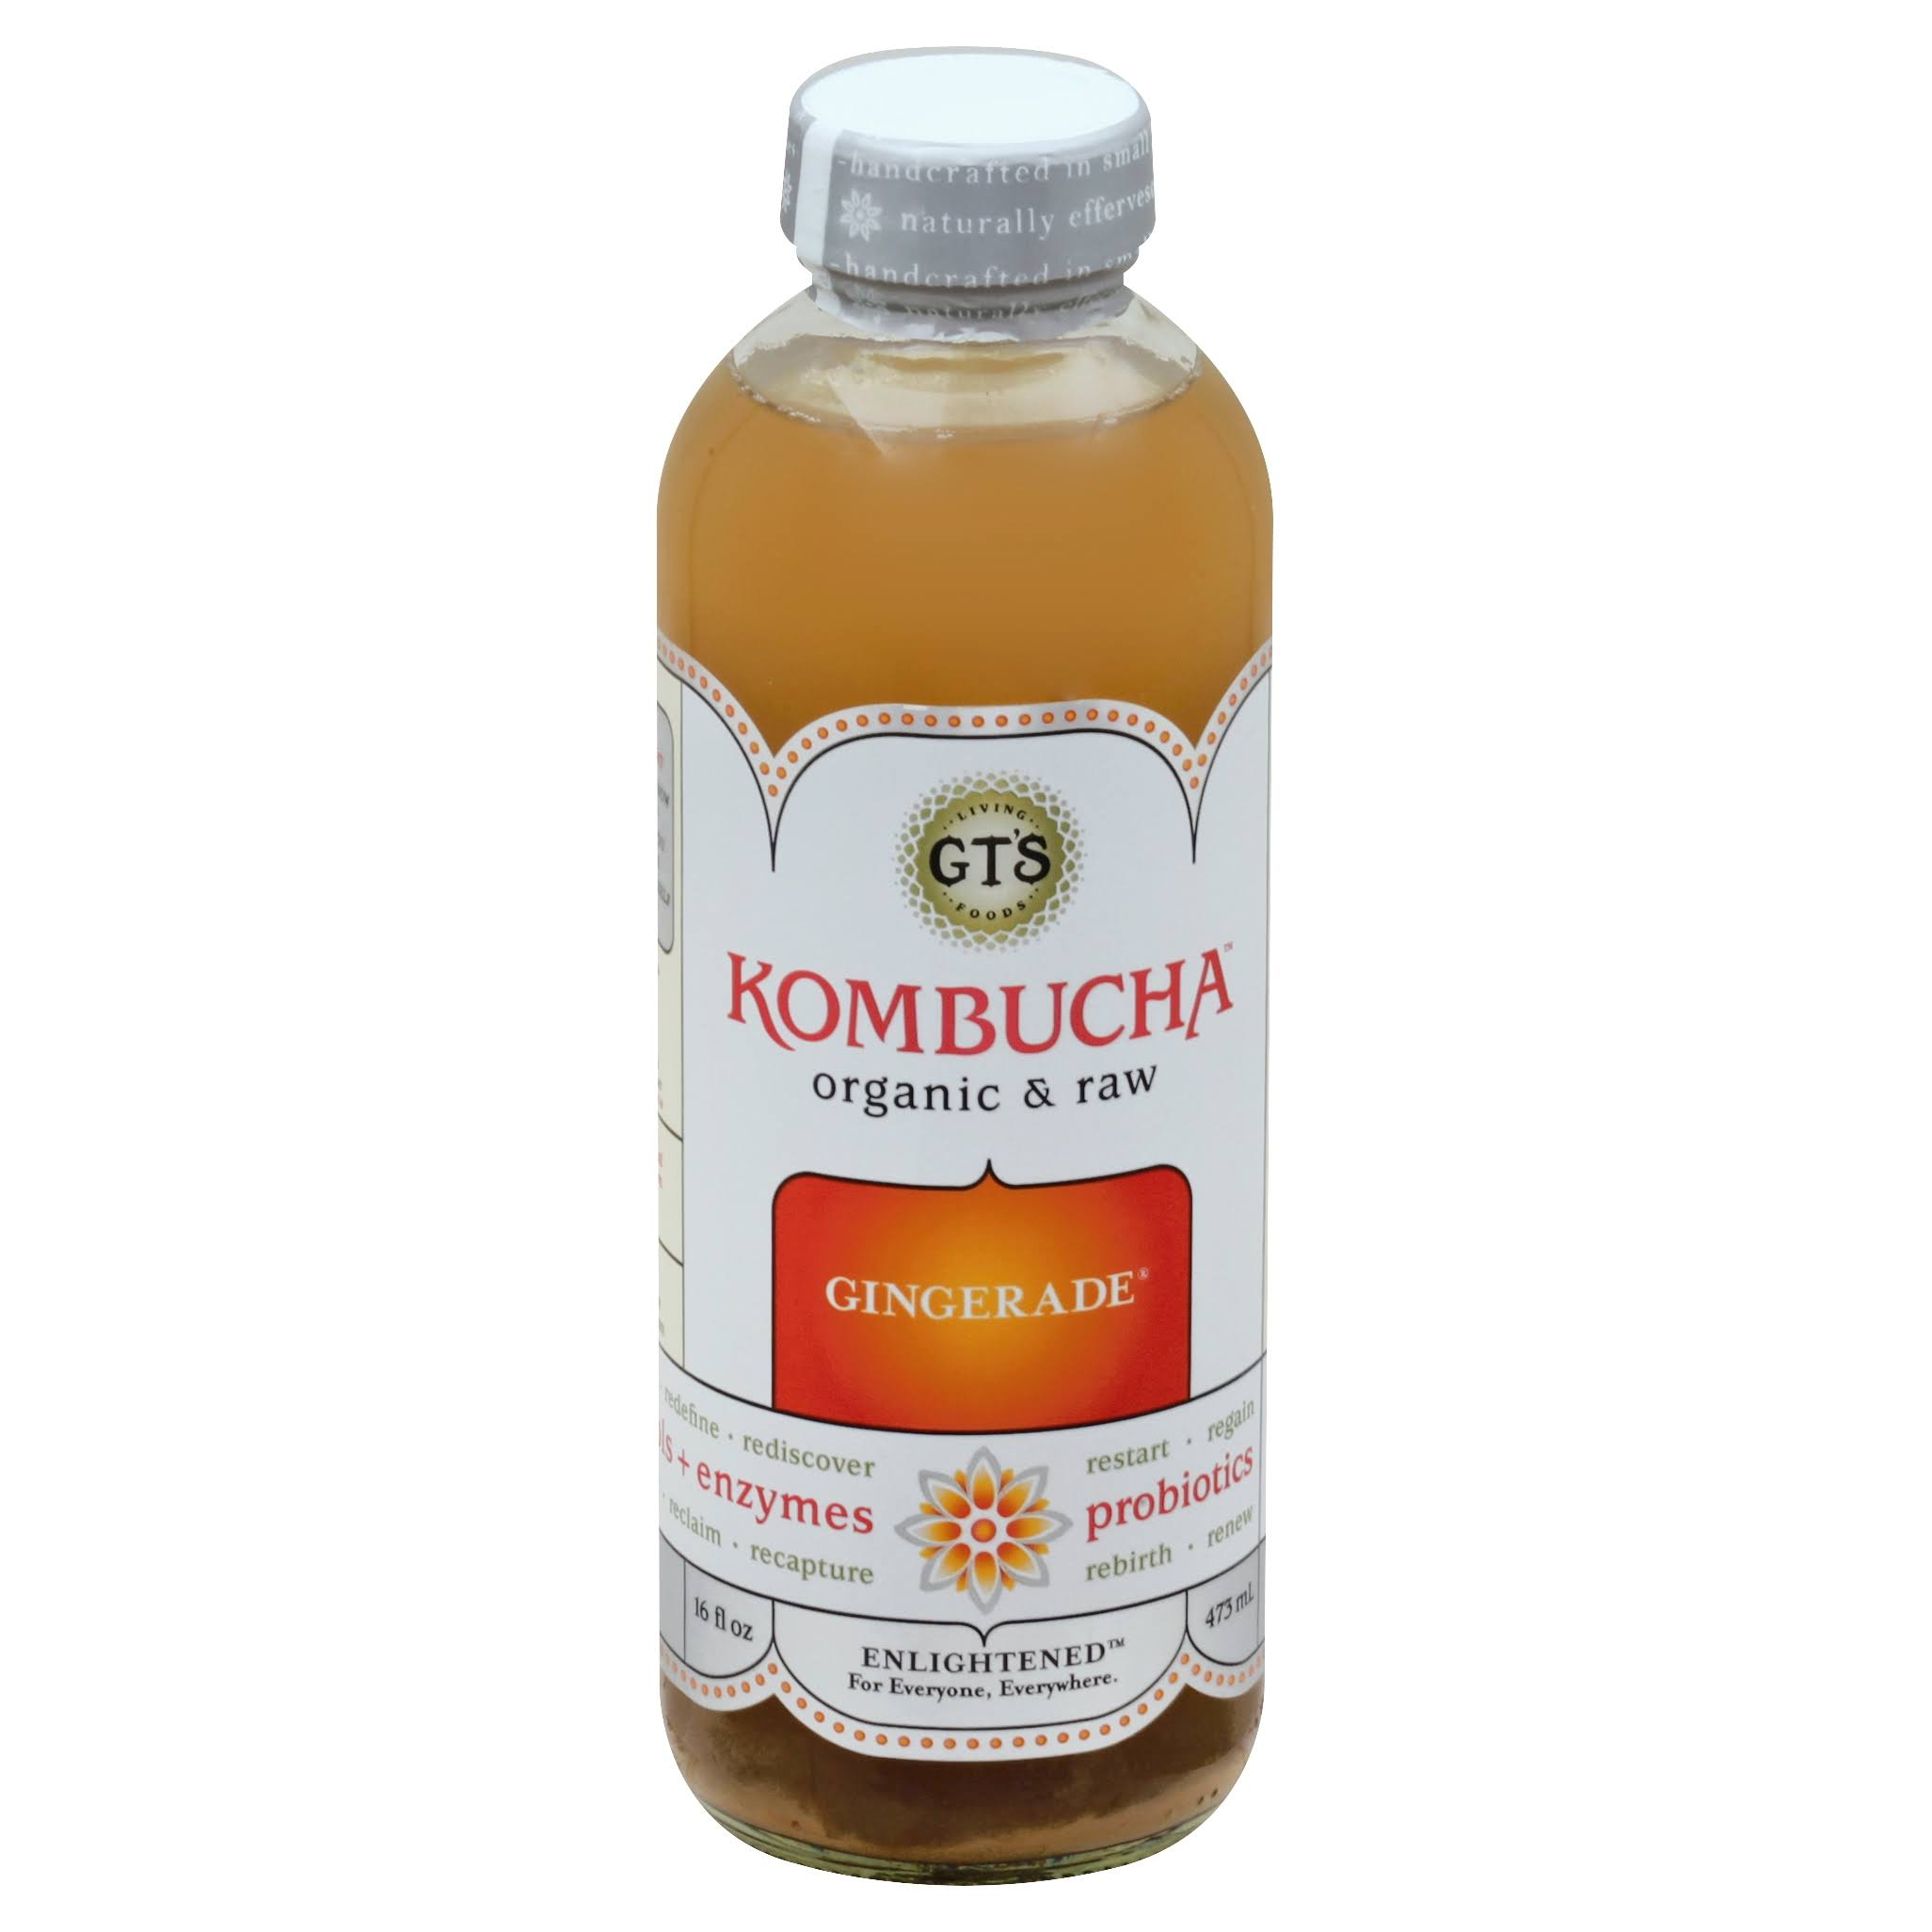 GT's Kombucha Organic and Raw Gingerade - 16.2oz